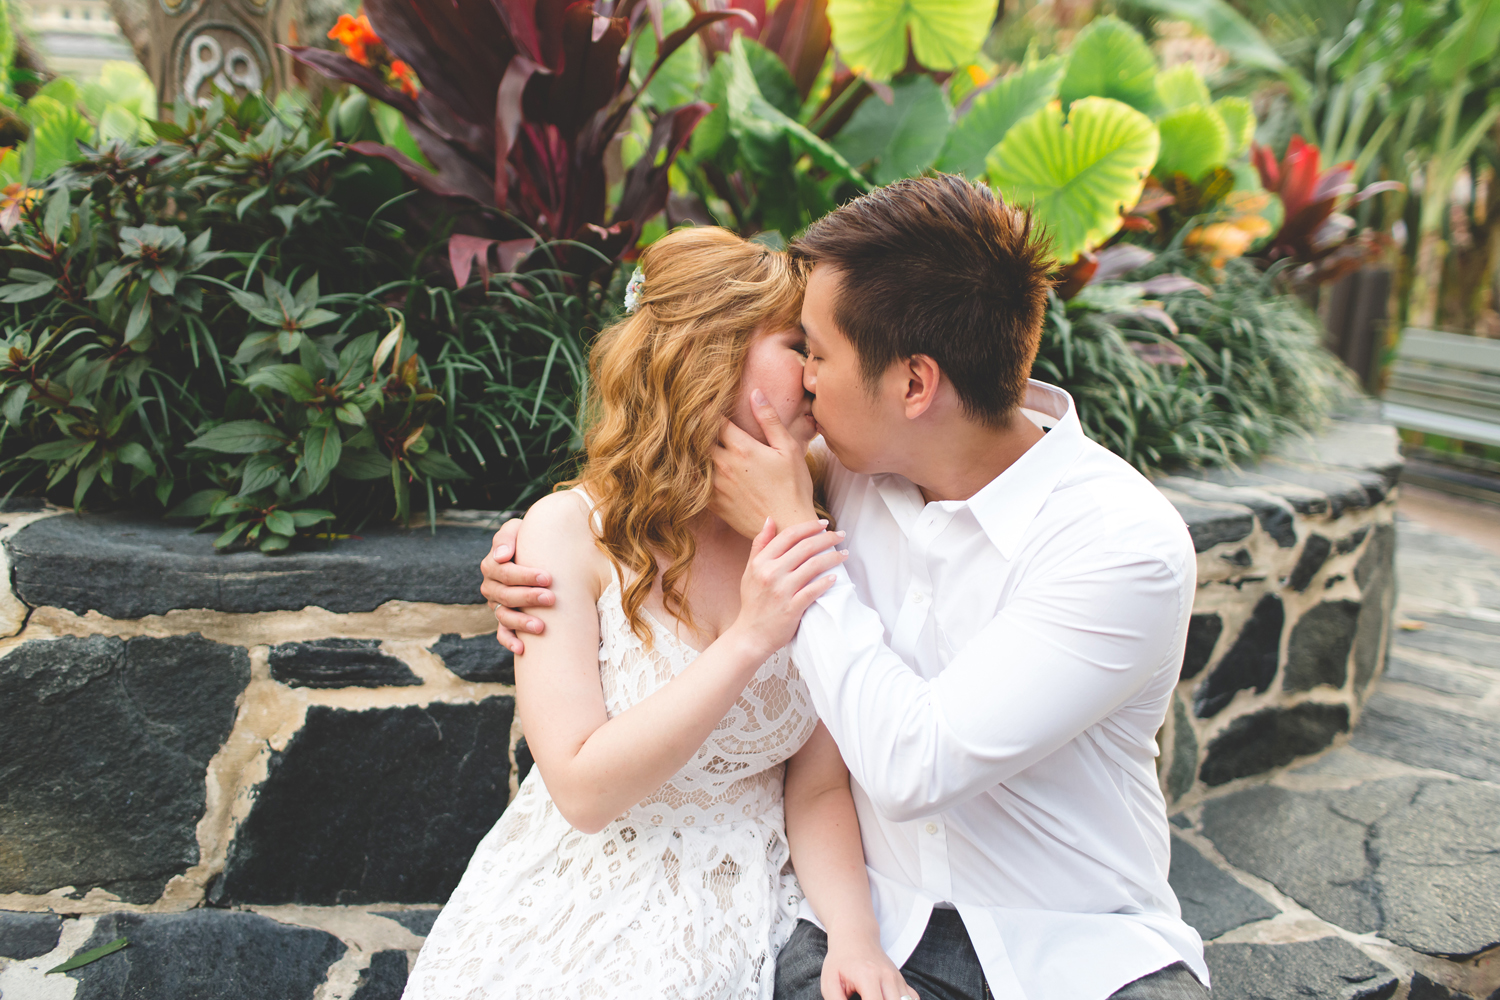 Disney Honeymoon session - Disney Engagement Photos - Disney Wedding Photographer - Destination Orlando Wedding Photographer - Jaime DiOrio (49).jpg